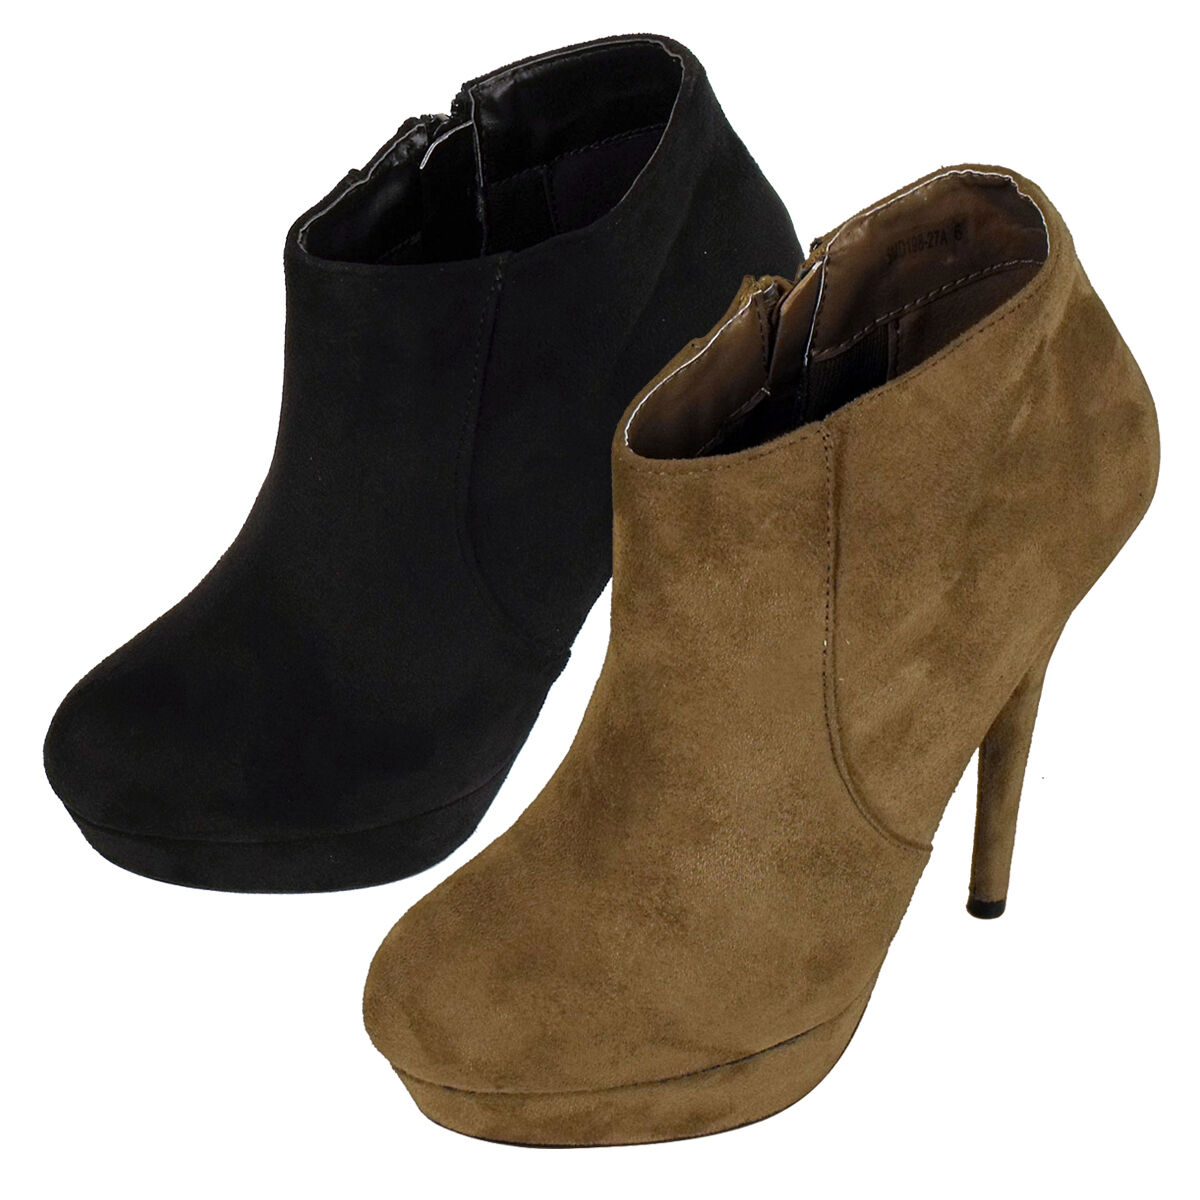 Womens Faux Suede Platform Ankle Boots Shoes Ladies Stiletto Heel Boot Shoe